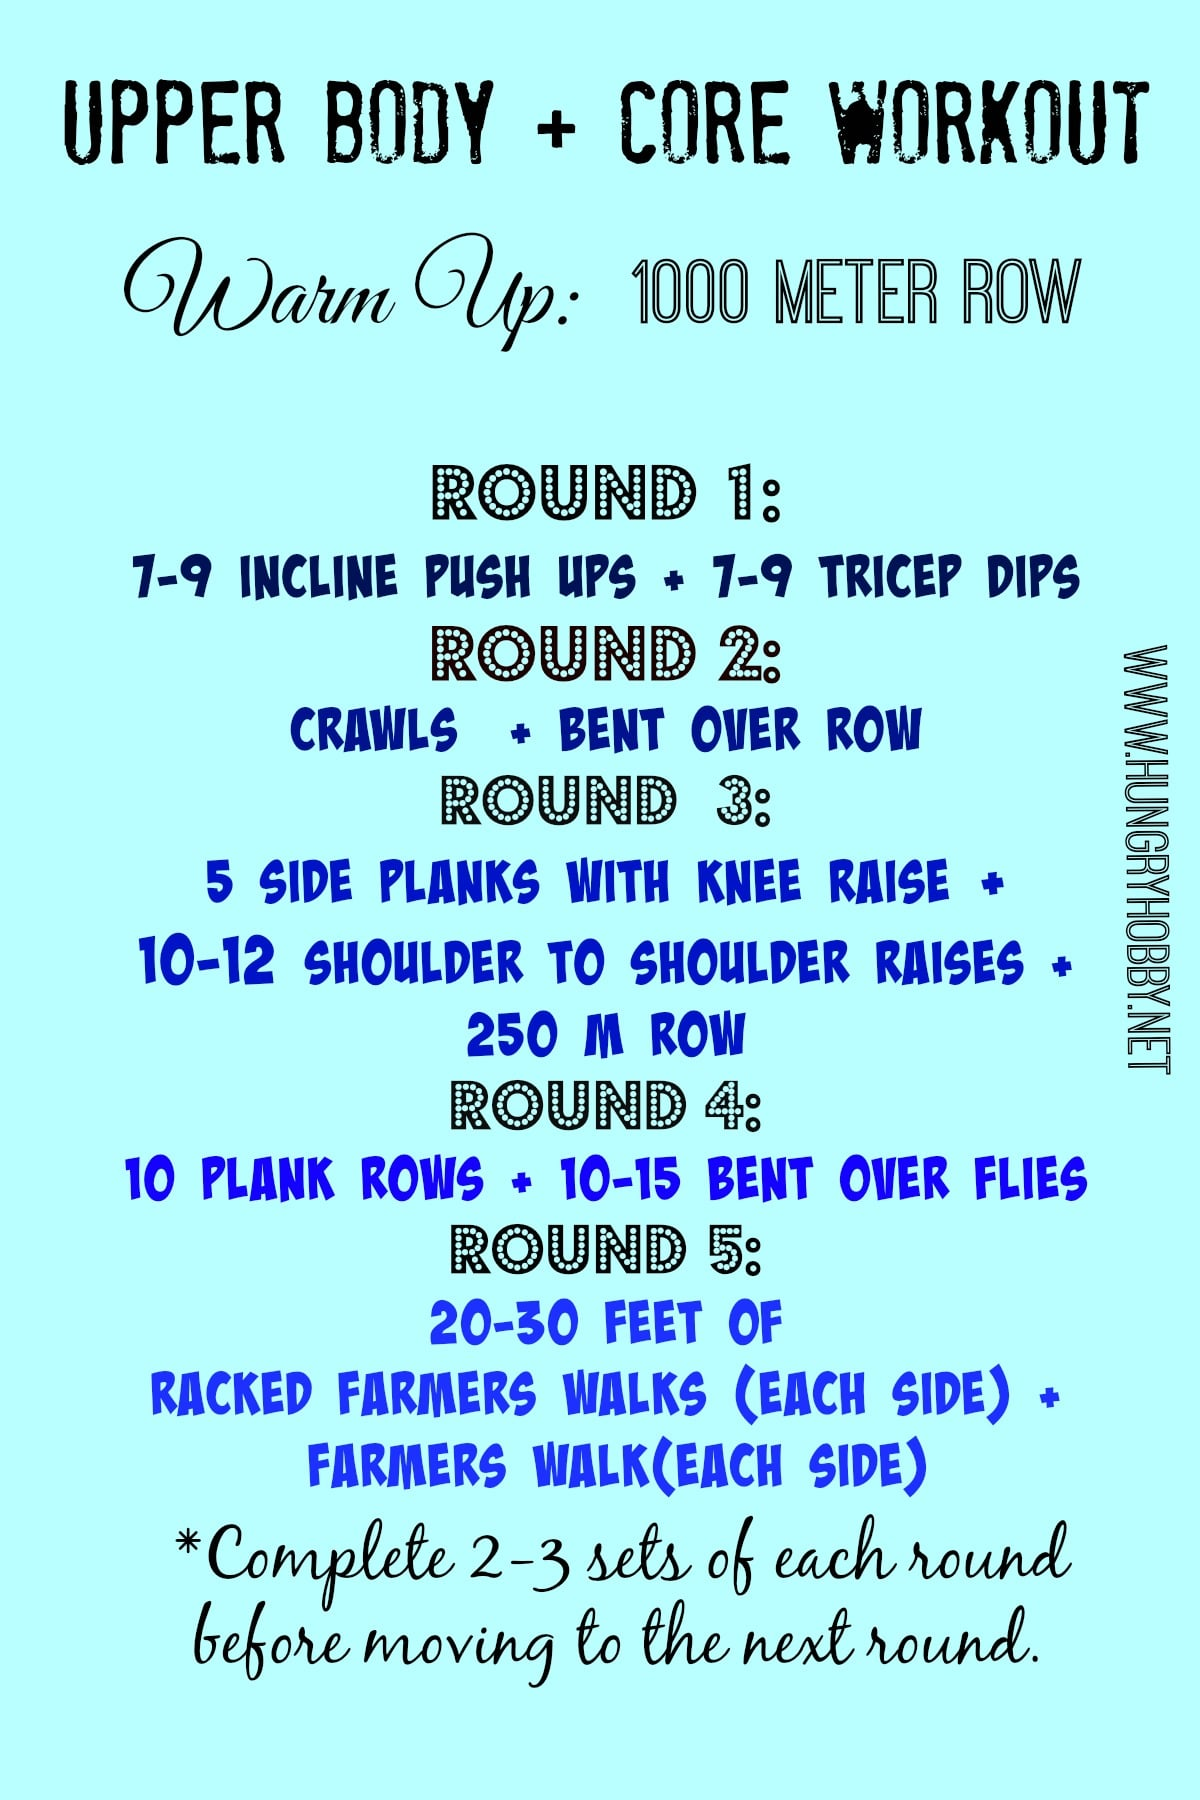 9 Quick Total Body Workouts No Equipment Needed Upper Workout Bodyweight Core Jpg